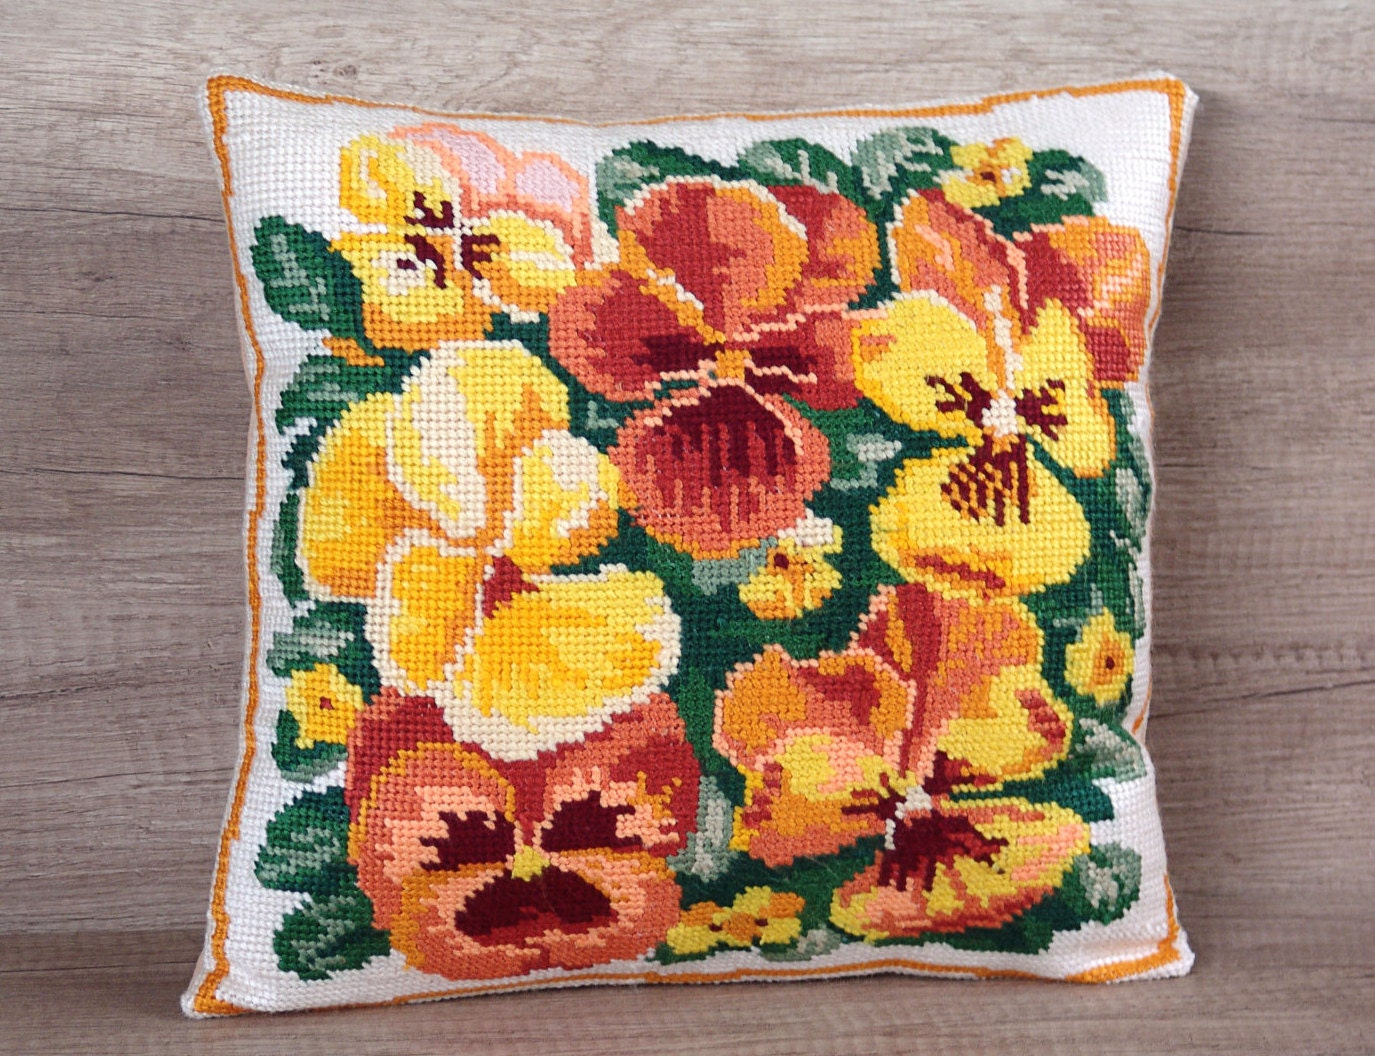 Modern Cross Stitch Pillows : Cross-stitch embroidery flower pillow cover colorful modern